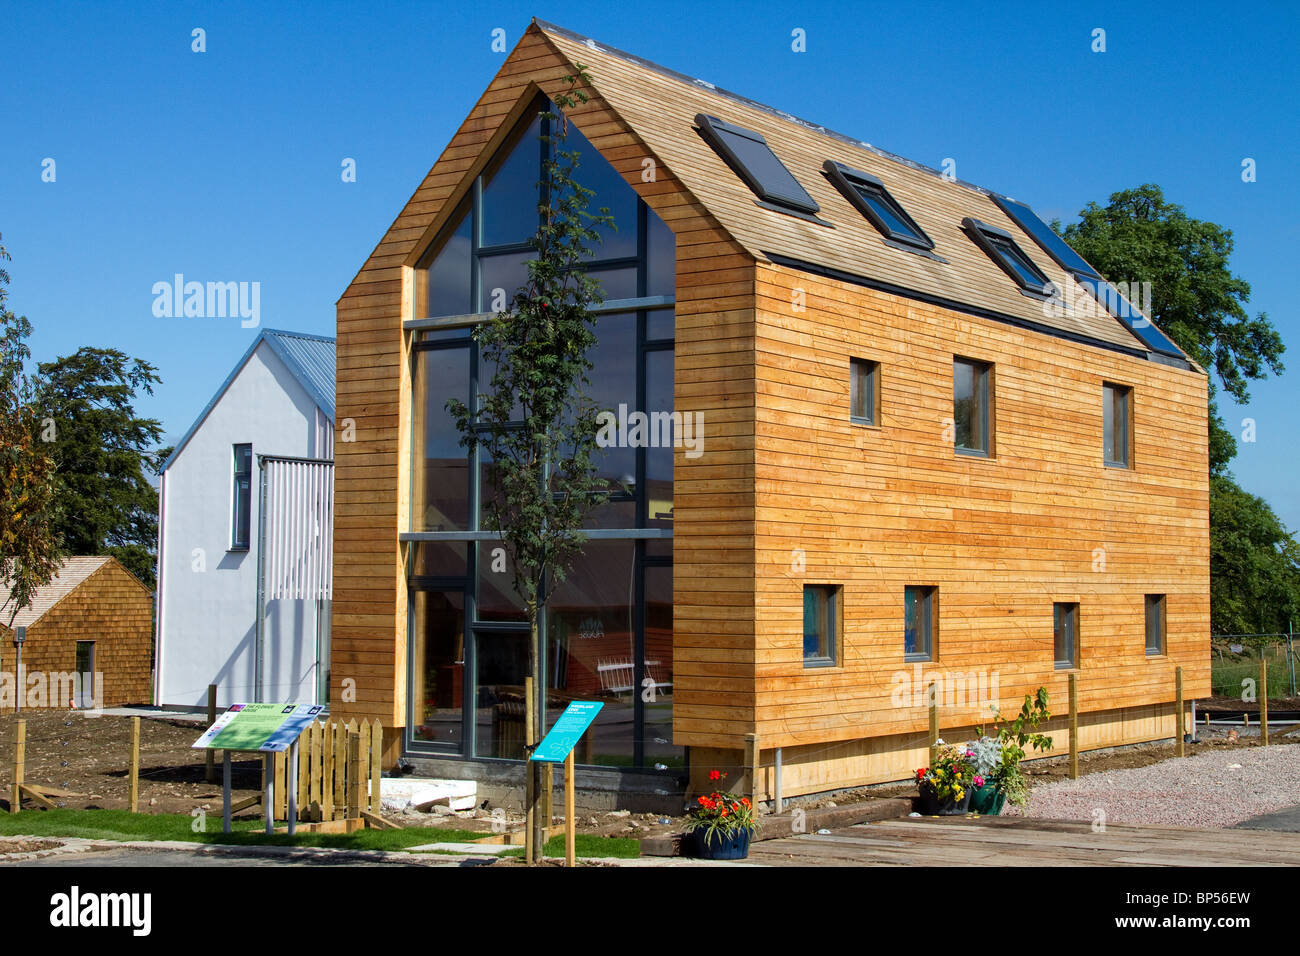 stunning eco friendly homes designs images interior design ideas eco friendly house designs uk house interior eco